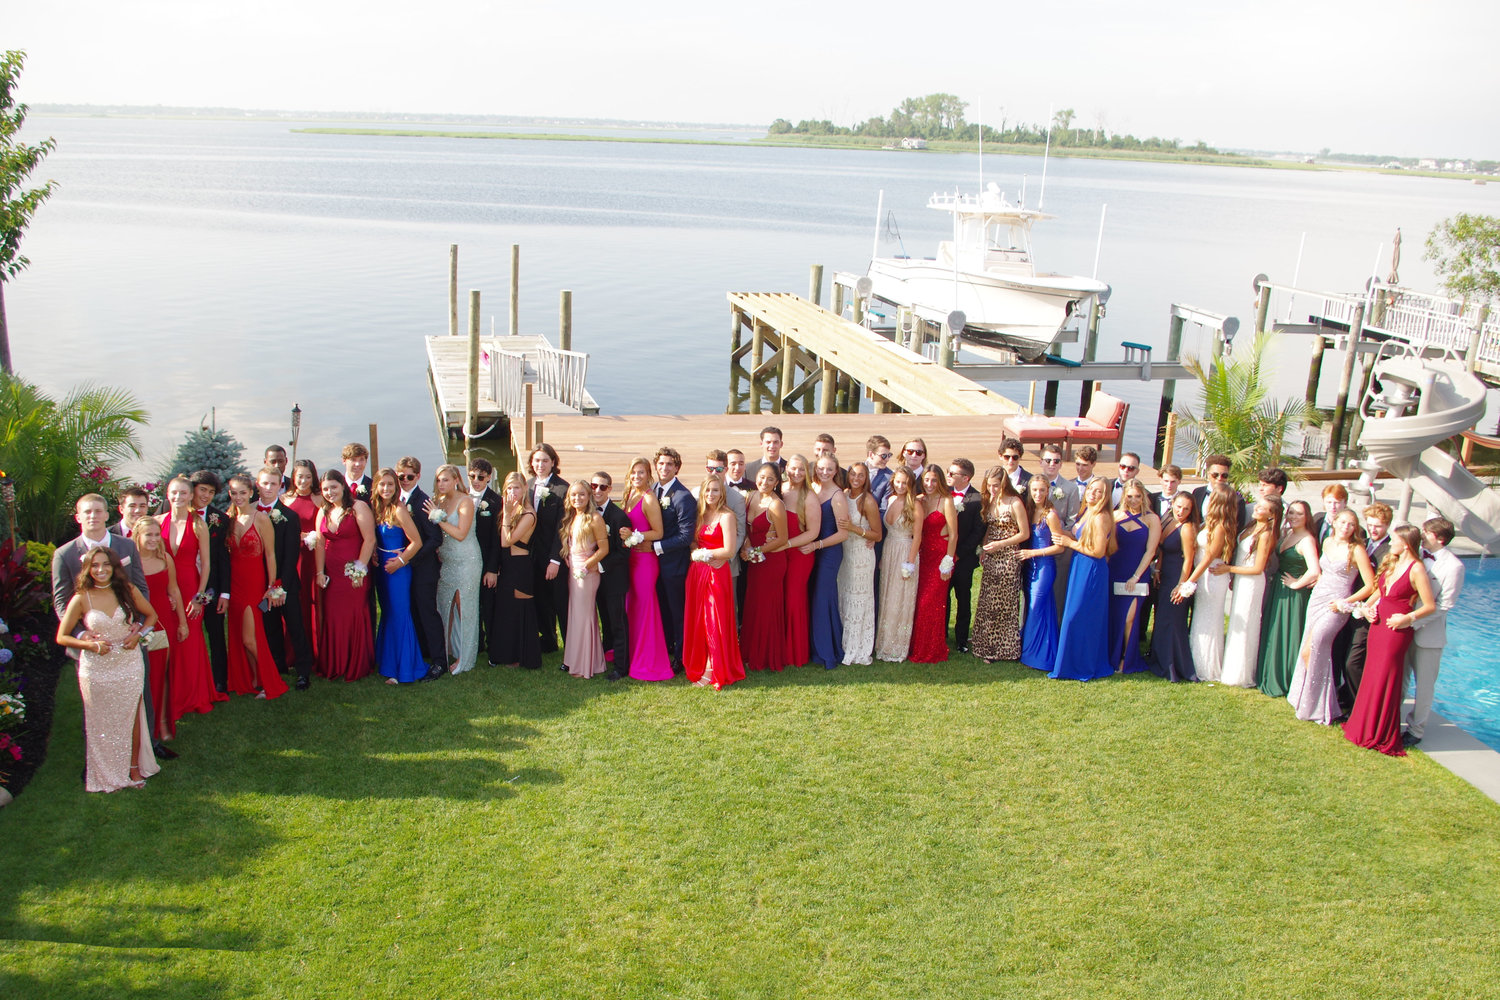 The students lined up for group shot at the home of classmate Caleb Monzon before heading to the prom at Chateau Briand in Westbury.